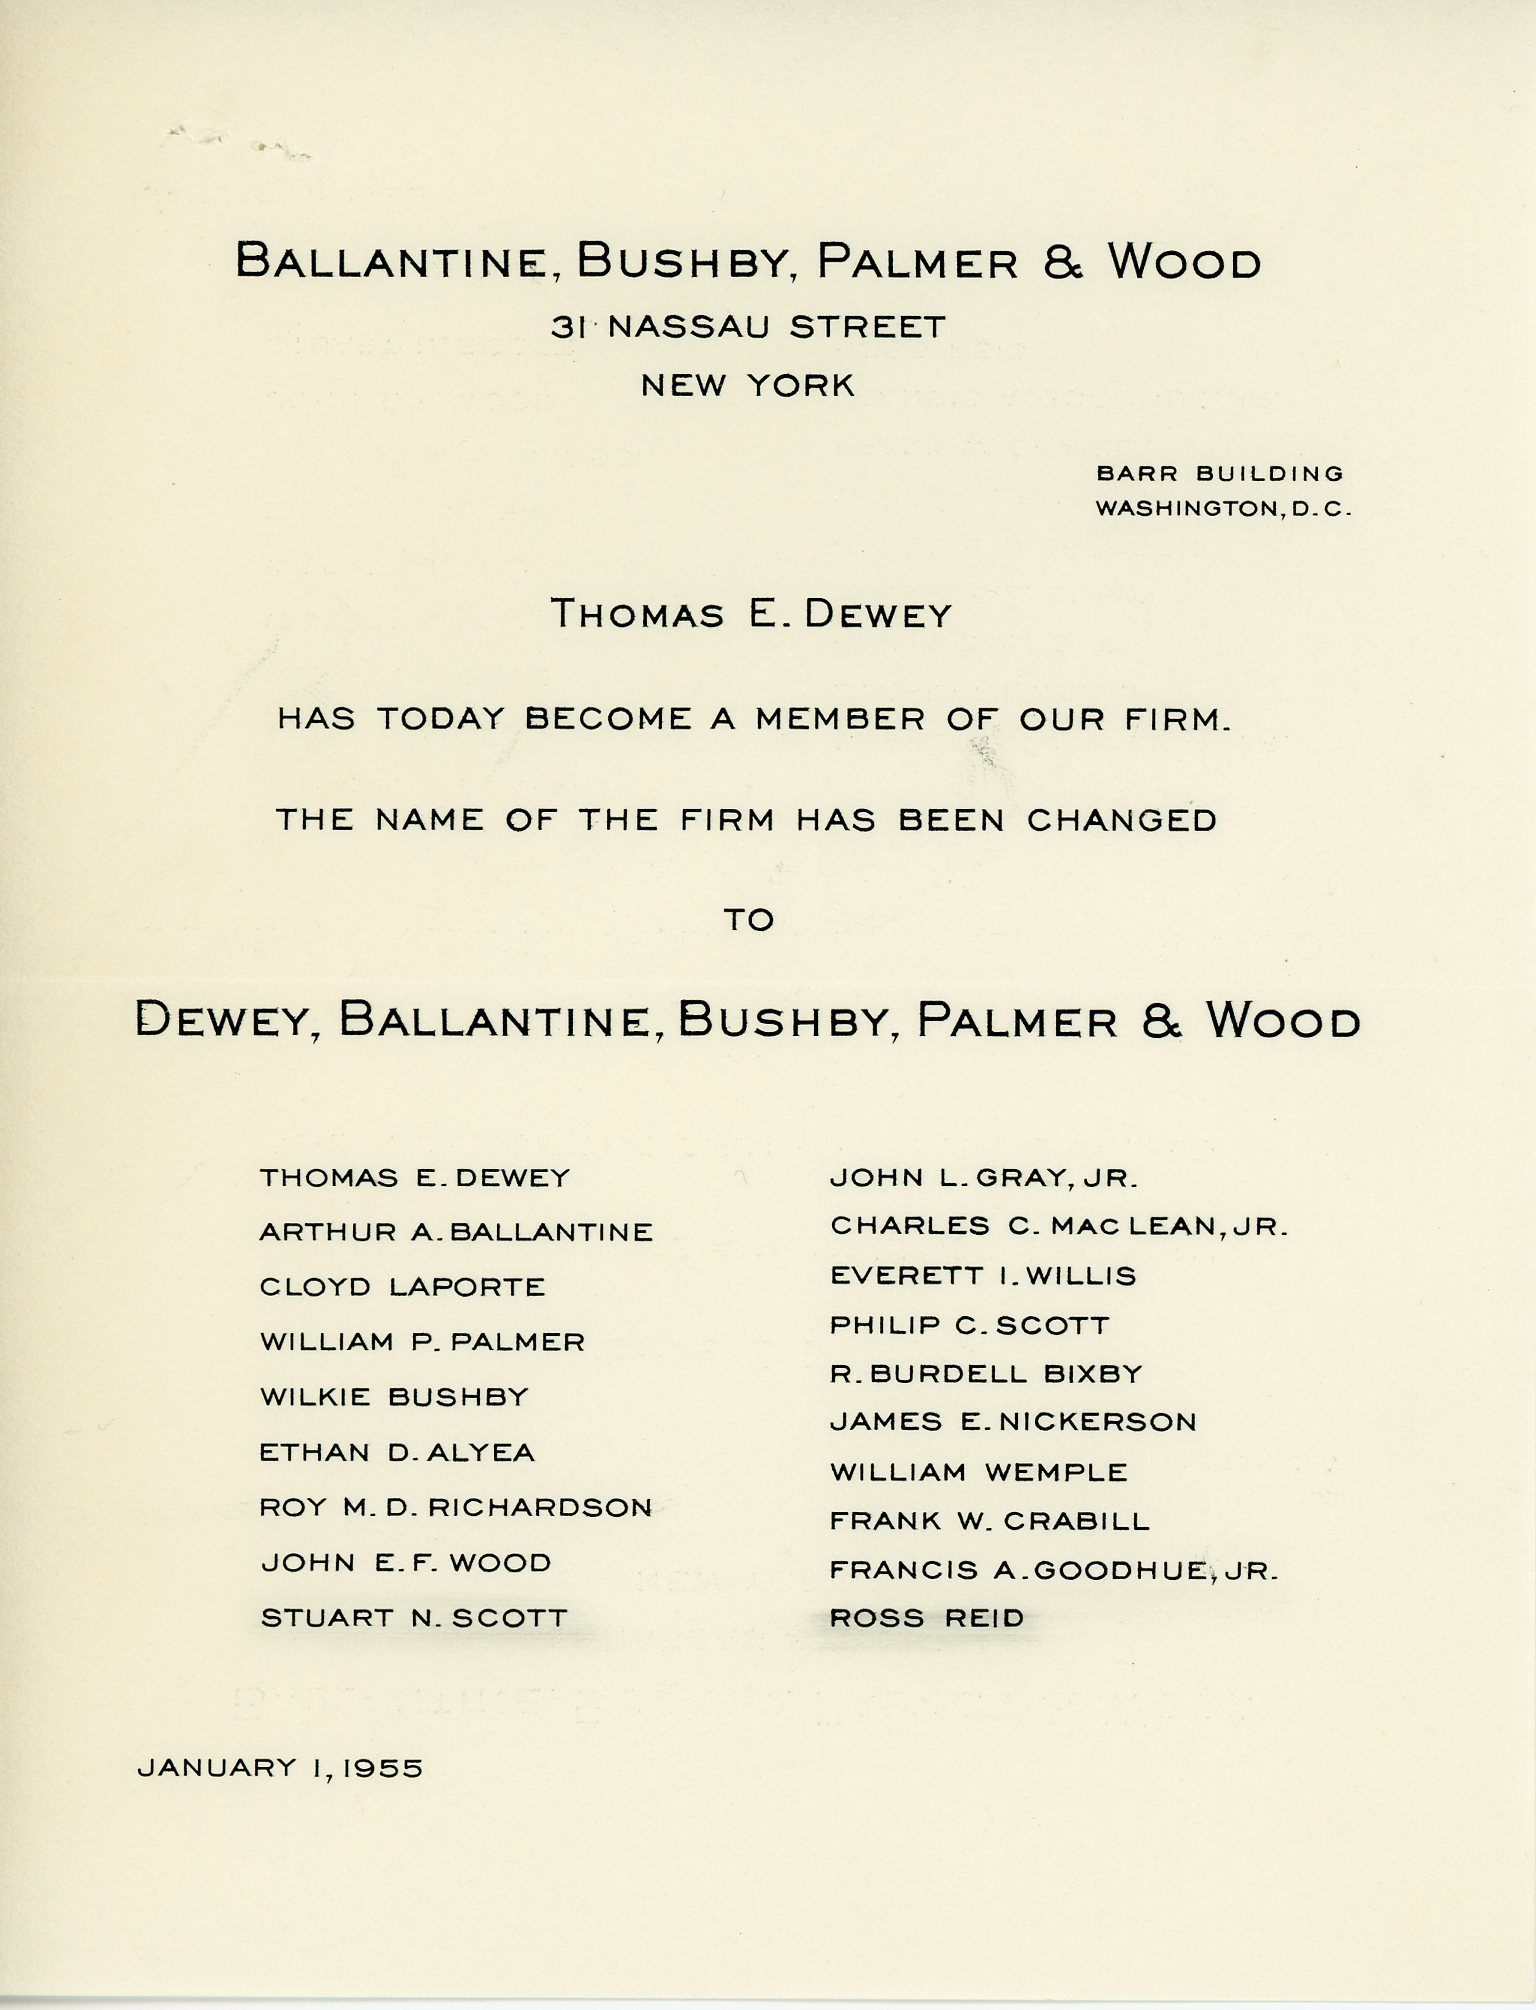 Ballantine, Bushby, Palmer and Wood Announcement, 1955 January 1